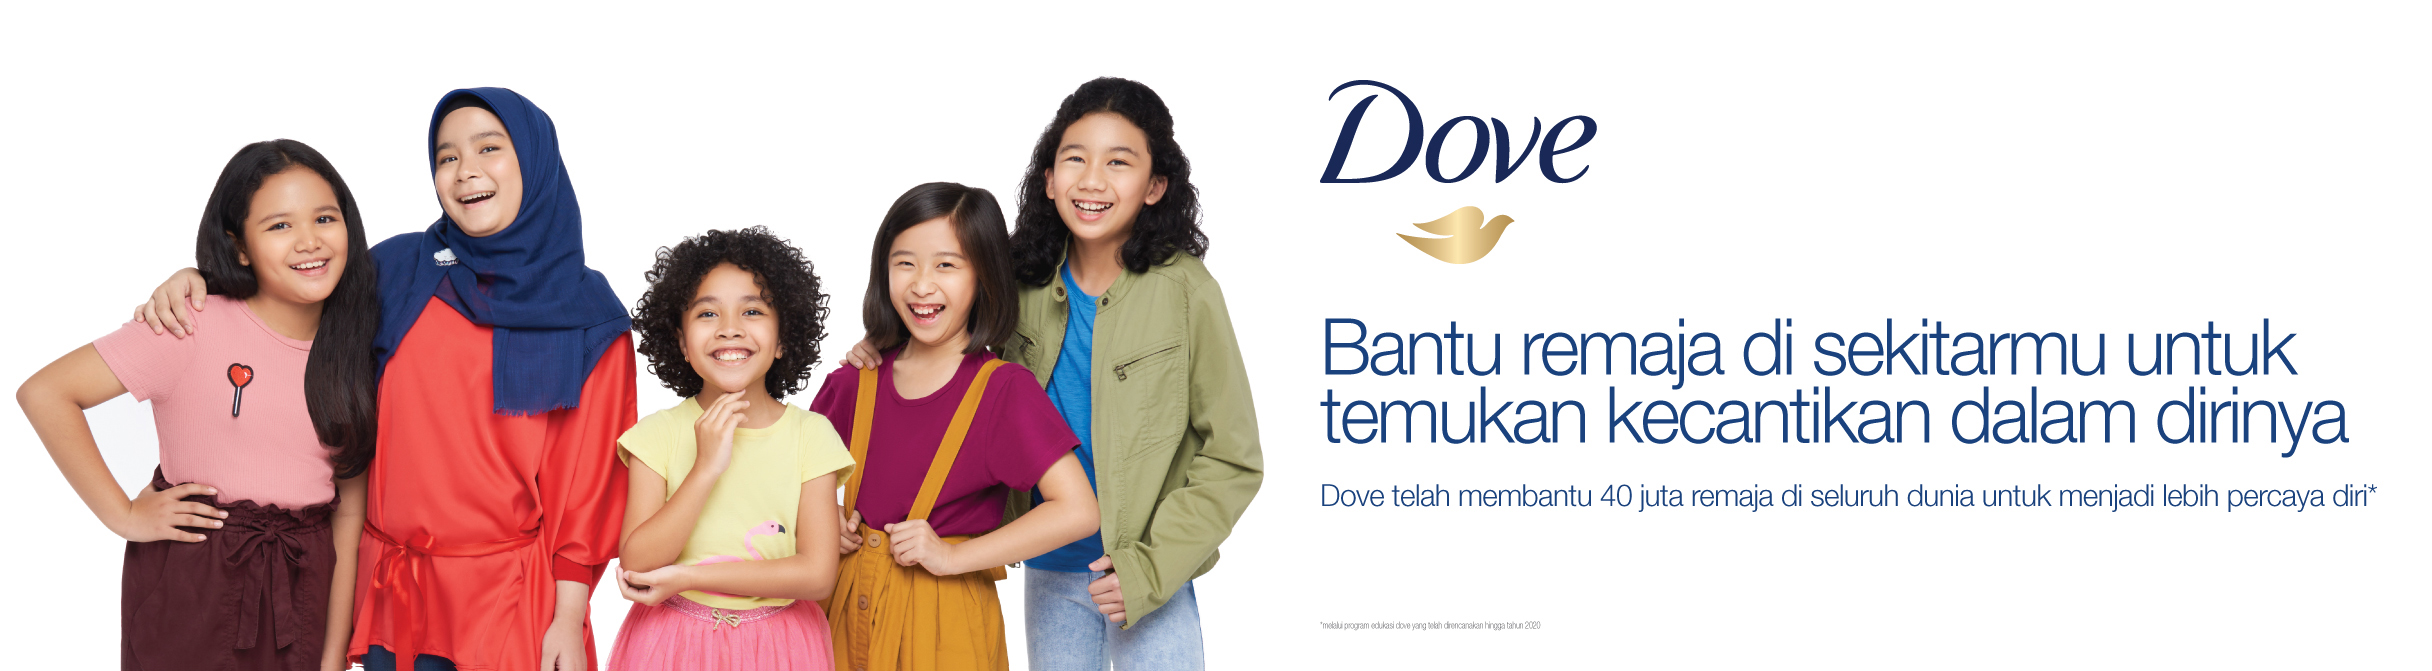 dove-second-banner